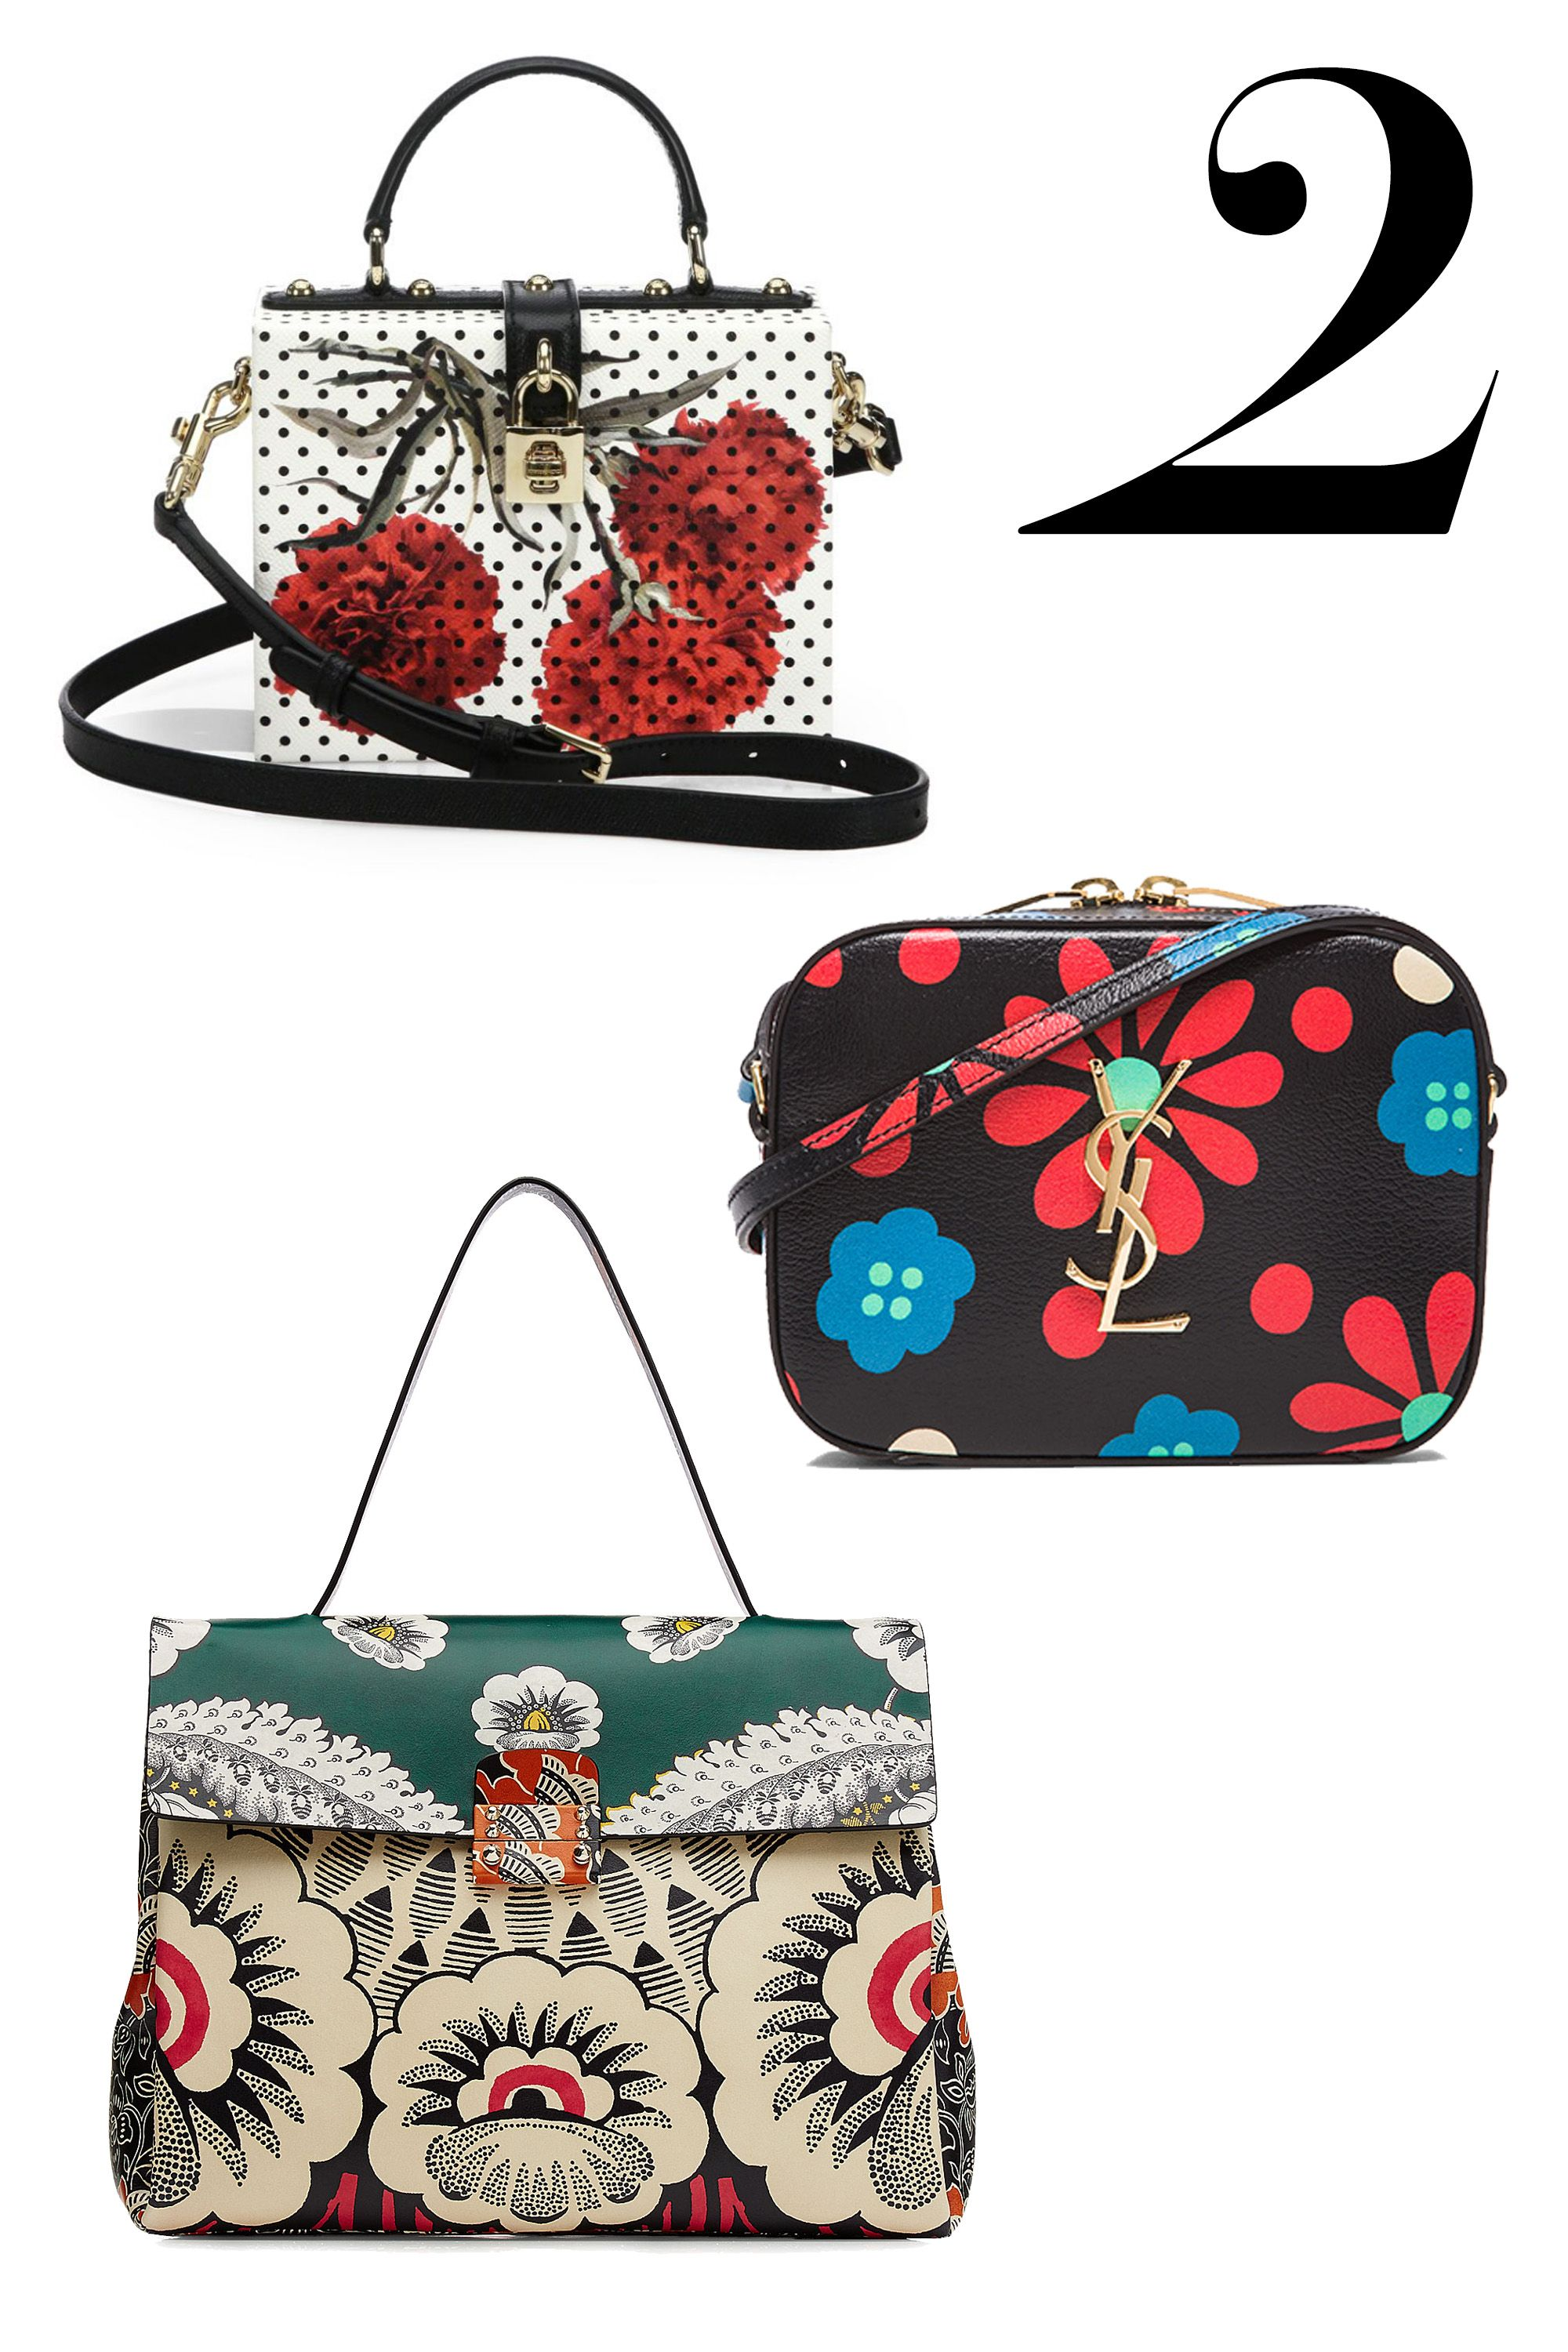 "If you're not a head-to-toe floral advocate, lean into the idea with a fetching printed bag.   <em>Dolce & Gabbana bag, $2,895, <a target=""_blank"" href=""http://www.saksfifthavenue.com/main/ProductDetail.jsp?PRODUCT%3C%3Eprd_id=845524446748961&site_refer=CSE_POLY&CA_6C15C=500002830008615526"">saksfifthavenue.com</a>; Saint Laurent bag, $1,090, <a target=""_blank"" href=""http://www.fwrd.com/fw/DisplayProduct.jsp?code=SLAU-WY128&utm_source=polyvore-US_CPC&utm_medium=affiliate&utm_campaign=Handbags&cvosrc=affiliate.polyvore.cpc-us&source=polyvore"">fwrd.com</a>; Valentino bag, price upon request, <a target=""_blank"" href=""http://www.saks.com"">saks.com</a>.</em>"